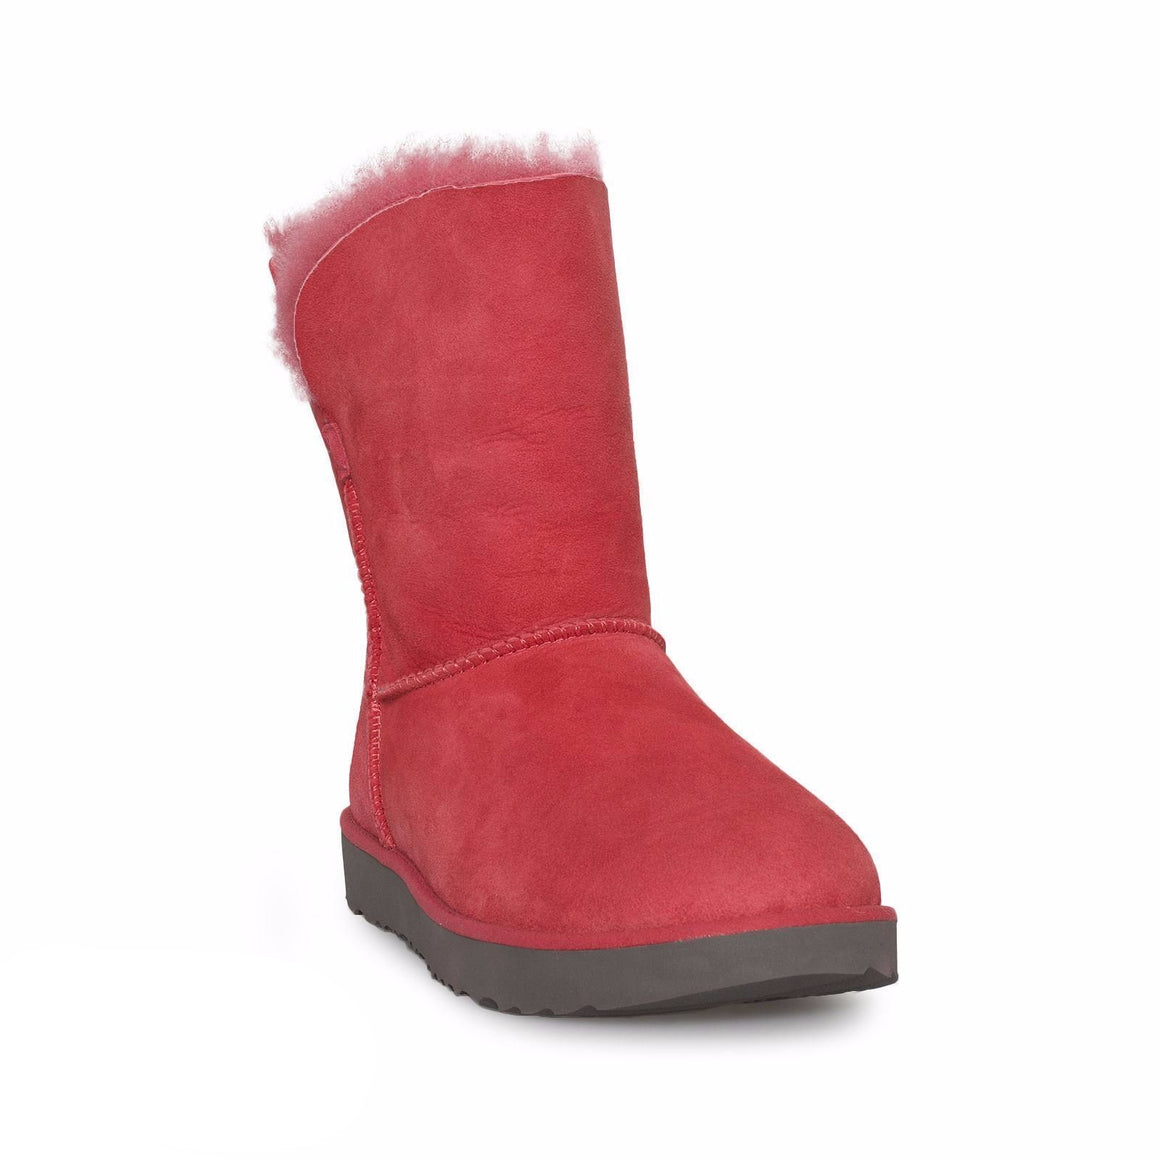 UGG Classic Cuff Short Lipstick Red Boots